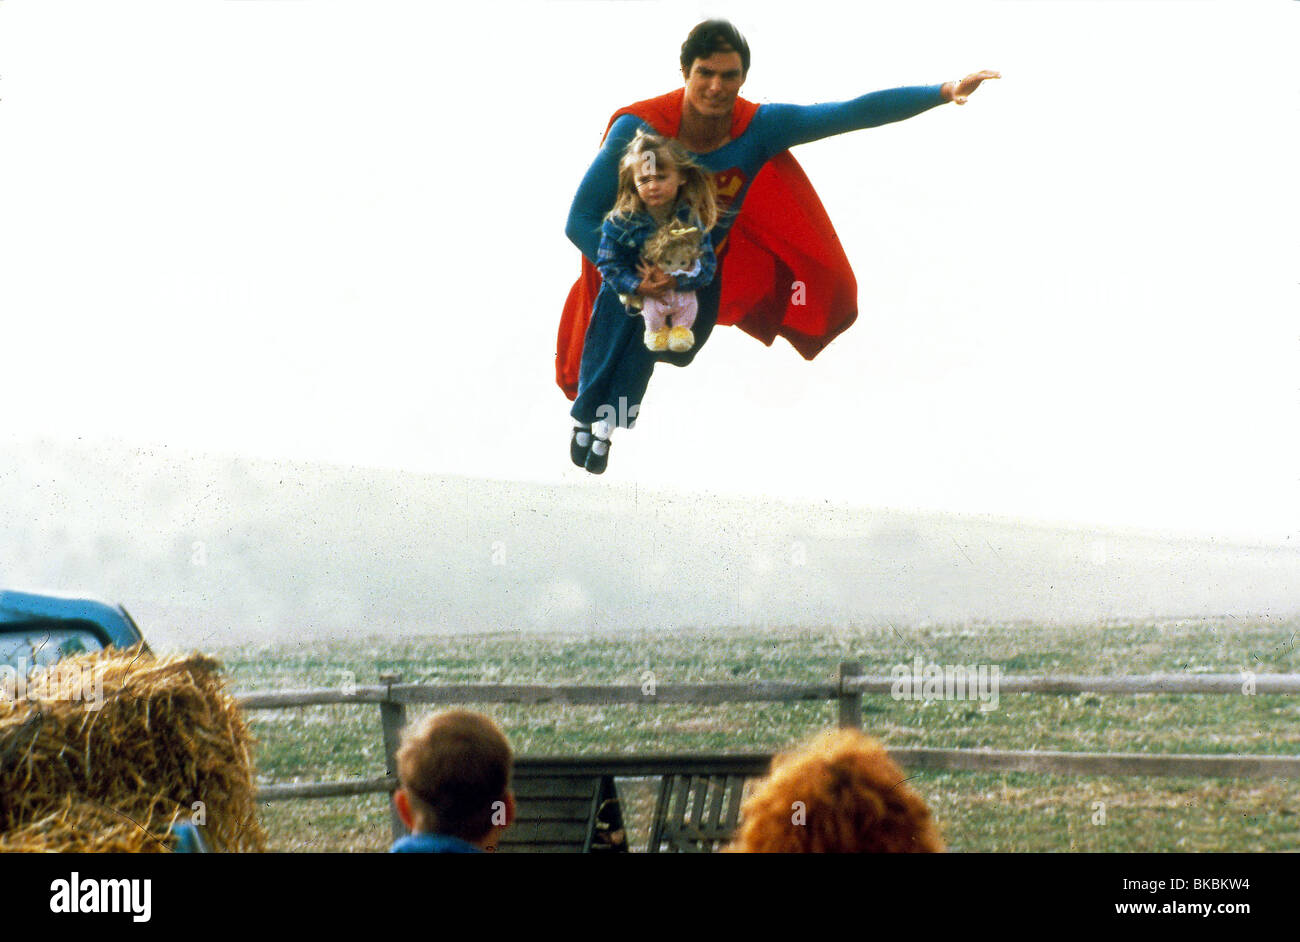 SUPERMAN IV (1987) CHRISTOPHER REEVE SP4 006 - Stock Image